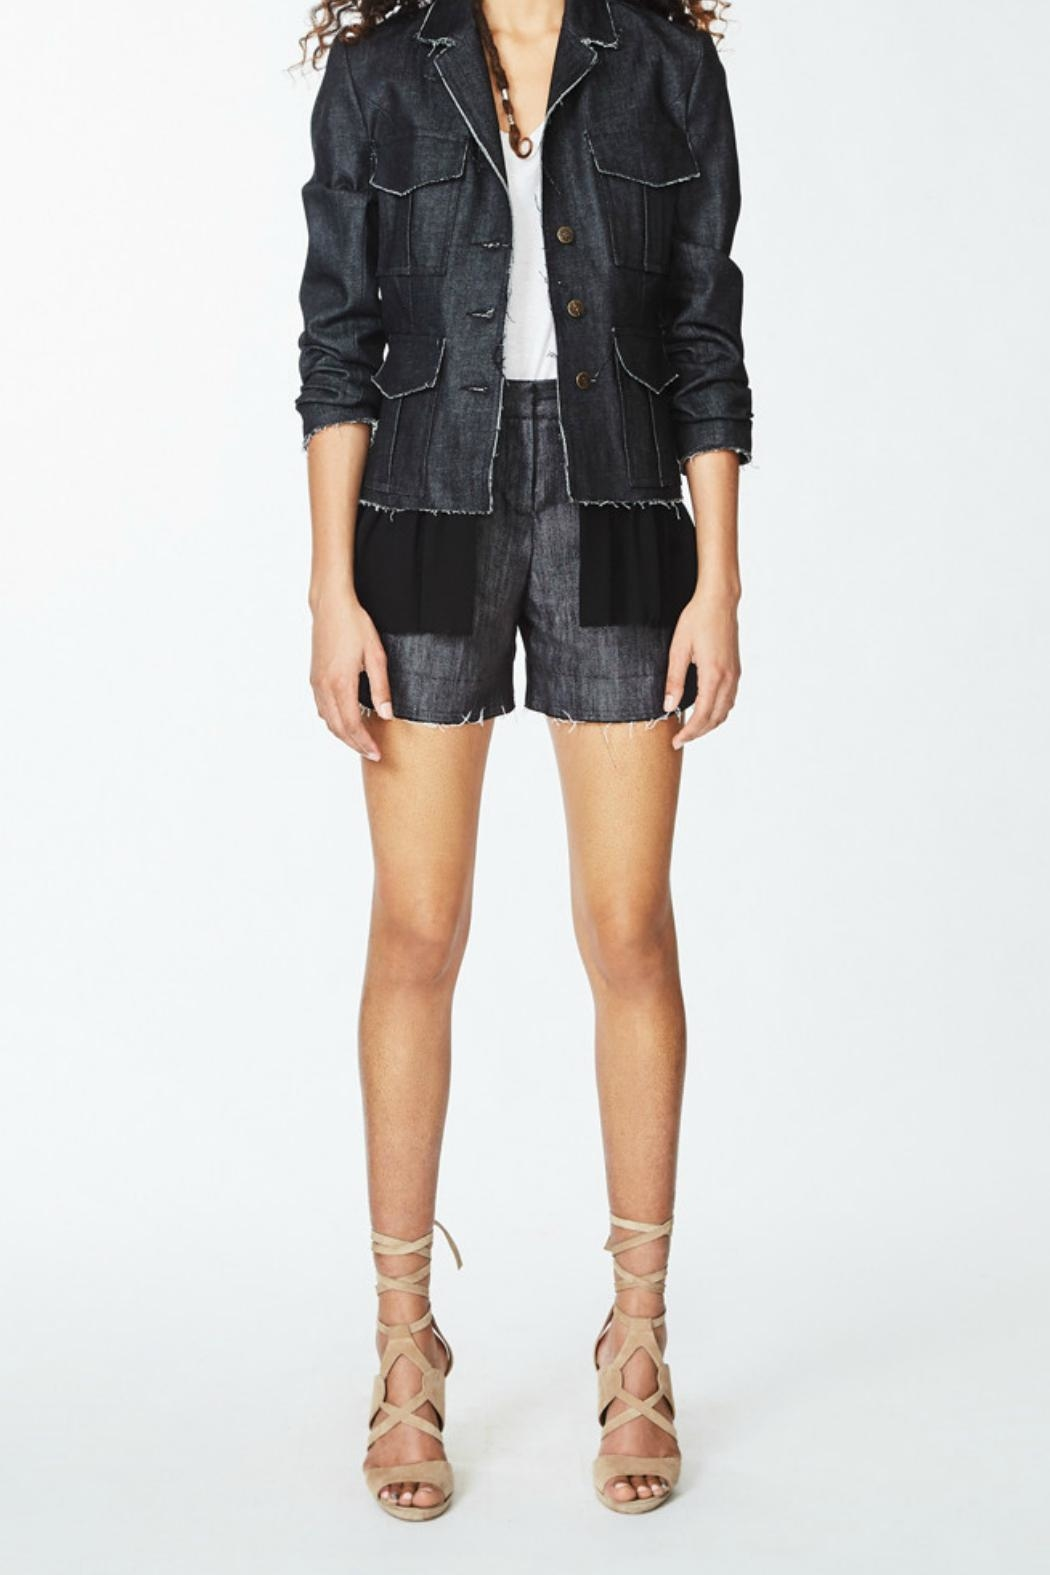 Nicole Miller Denim Combo Jacket - Back Cropped Image